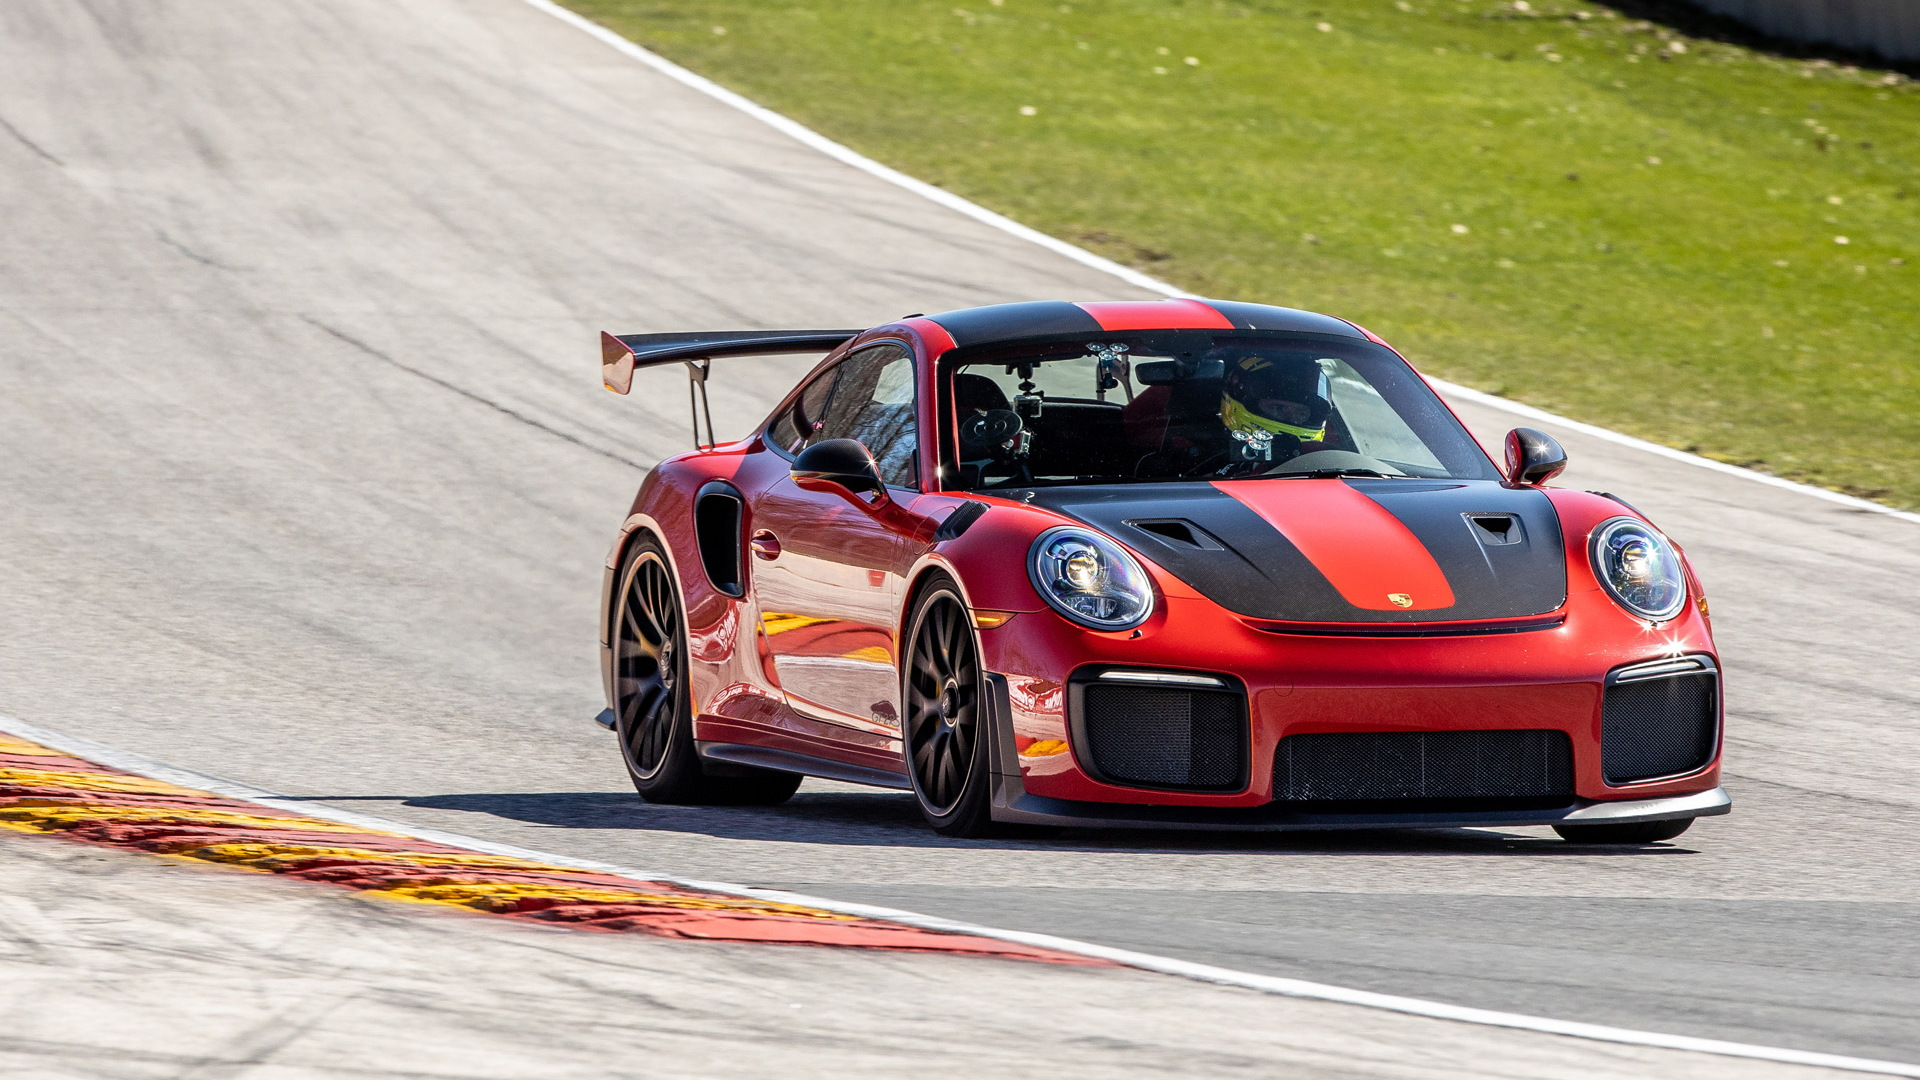 2018 Porsche 911 GT2 RS at Road America